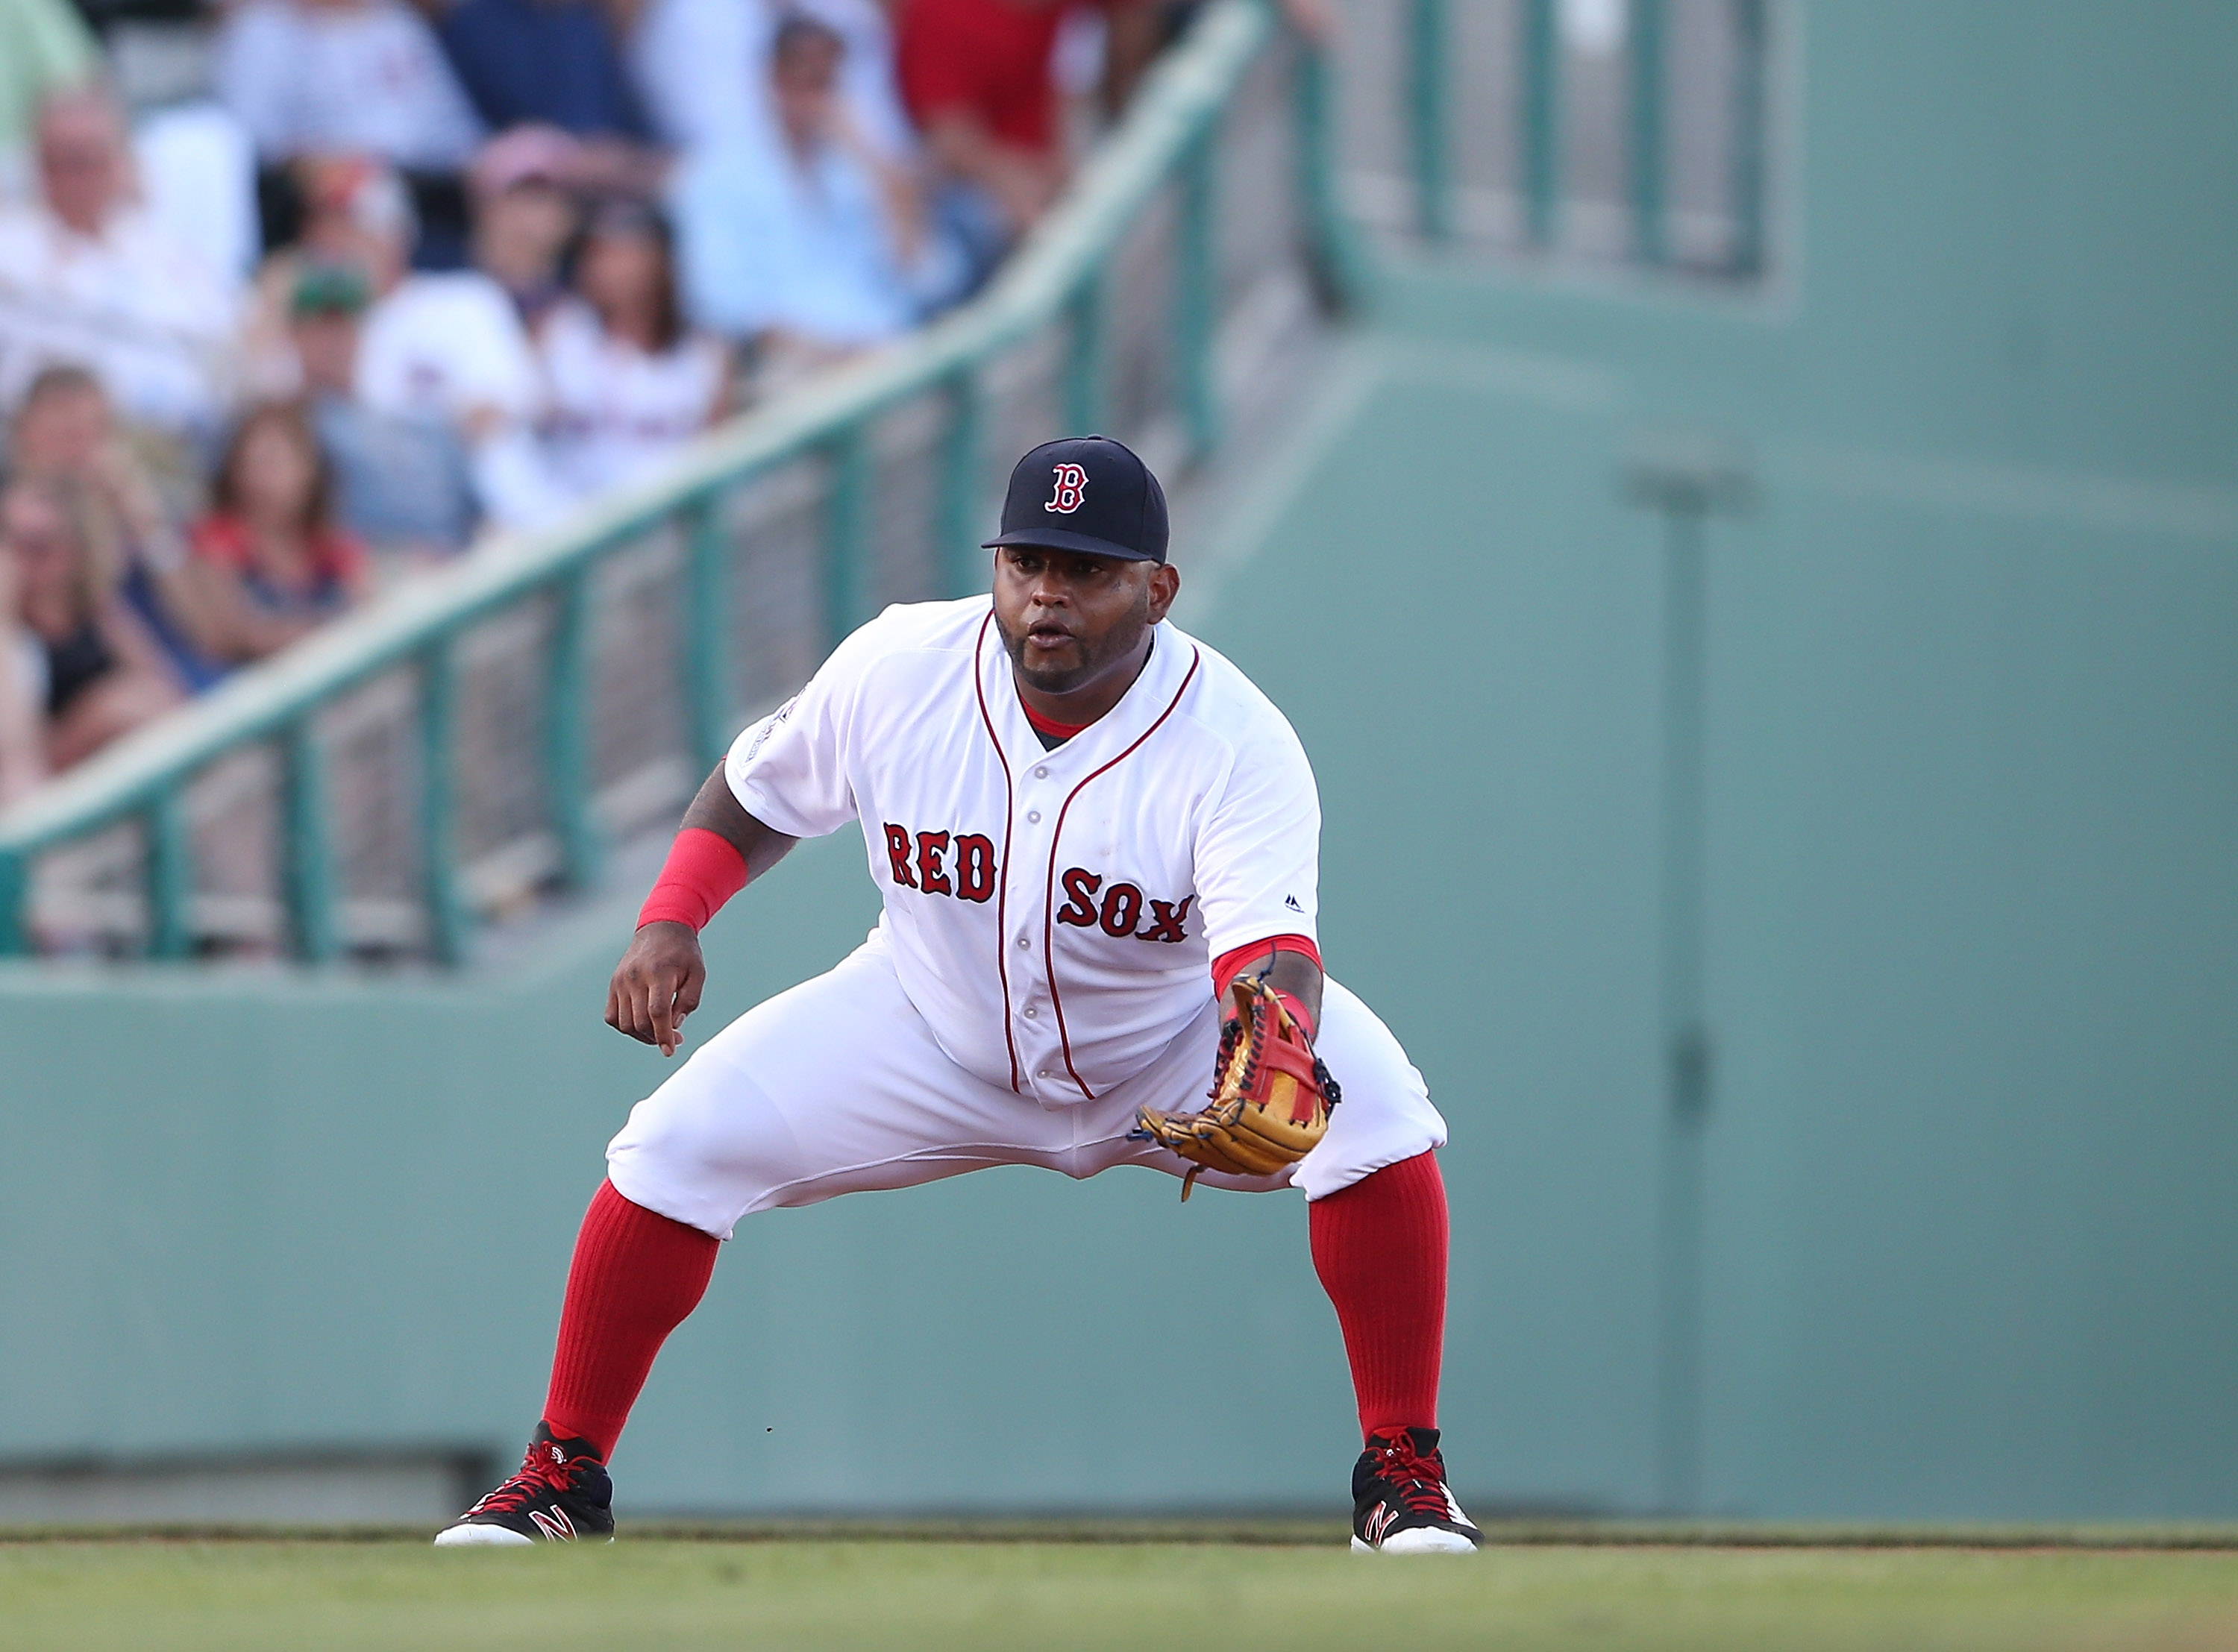 FORT MYERS, FL - MARCH 15: Pablo Sandoval #48 of the Boston Red Sox gets ready to field the ball during the second inning of the Spring Training Game against the New York Yankees on March 15, 2016 at Jet Blue Park at Fenway South, Fort Myers, Florida. The Yankees defeated the Red Sox 6-3. (Photo by Leon Halip/Getty Images)